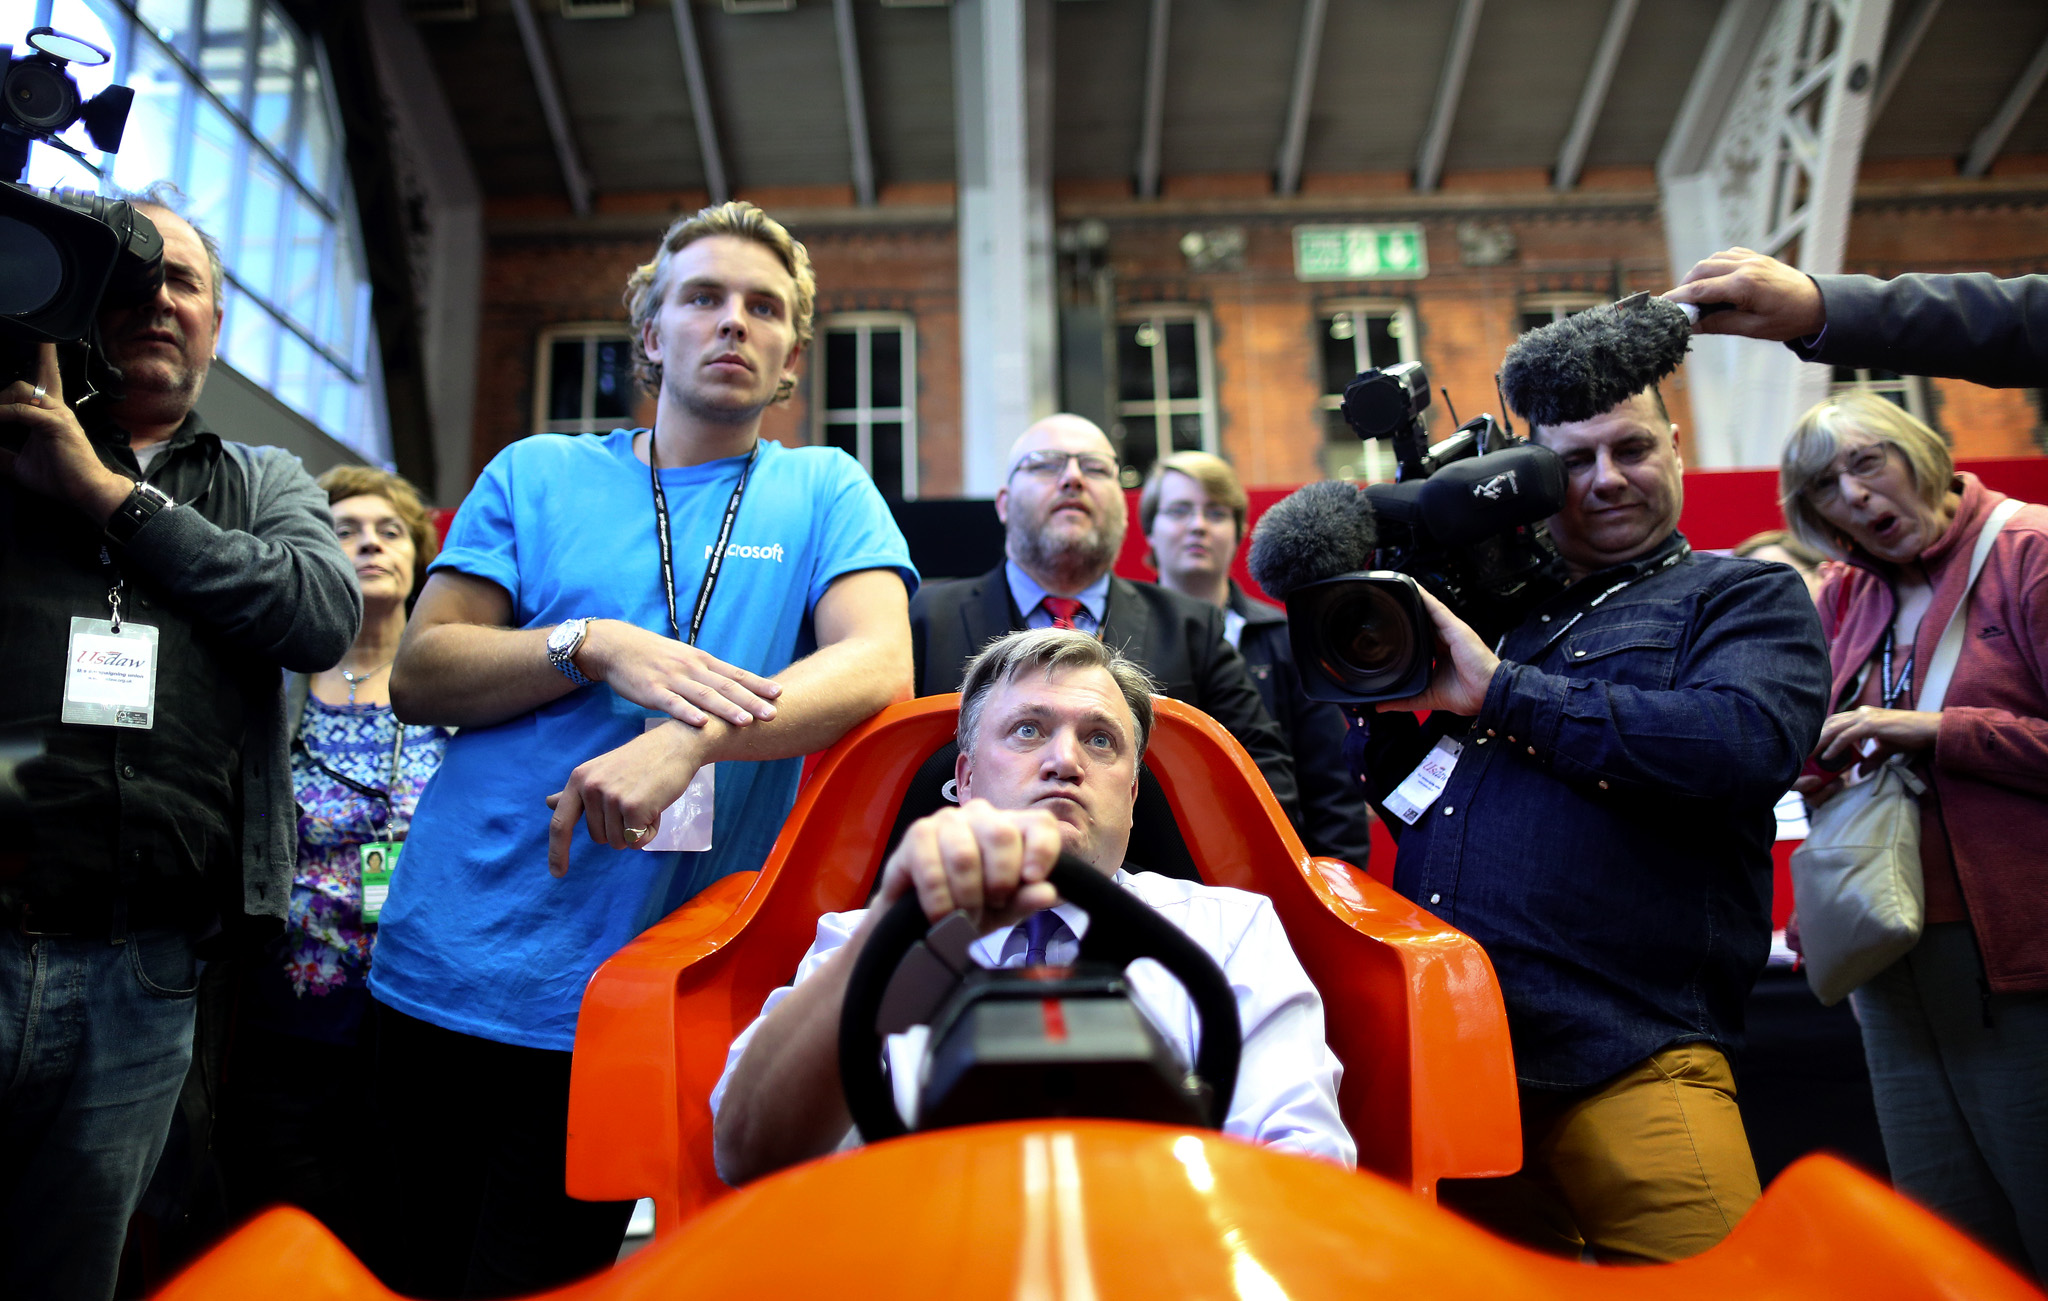 Shadow Chancellor, Ed Balls, takes part in a driving game on a stand in the conference hall at the Labour party conference in Manchester